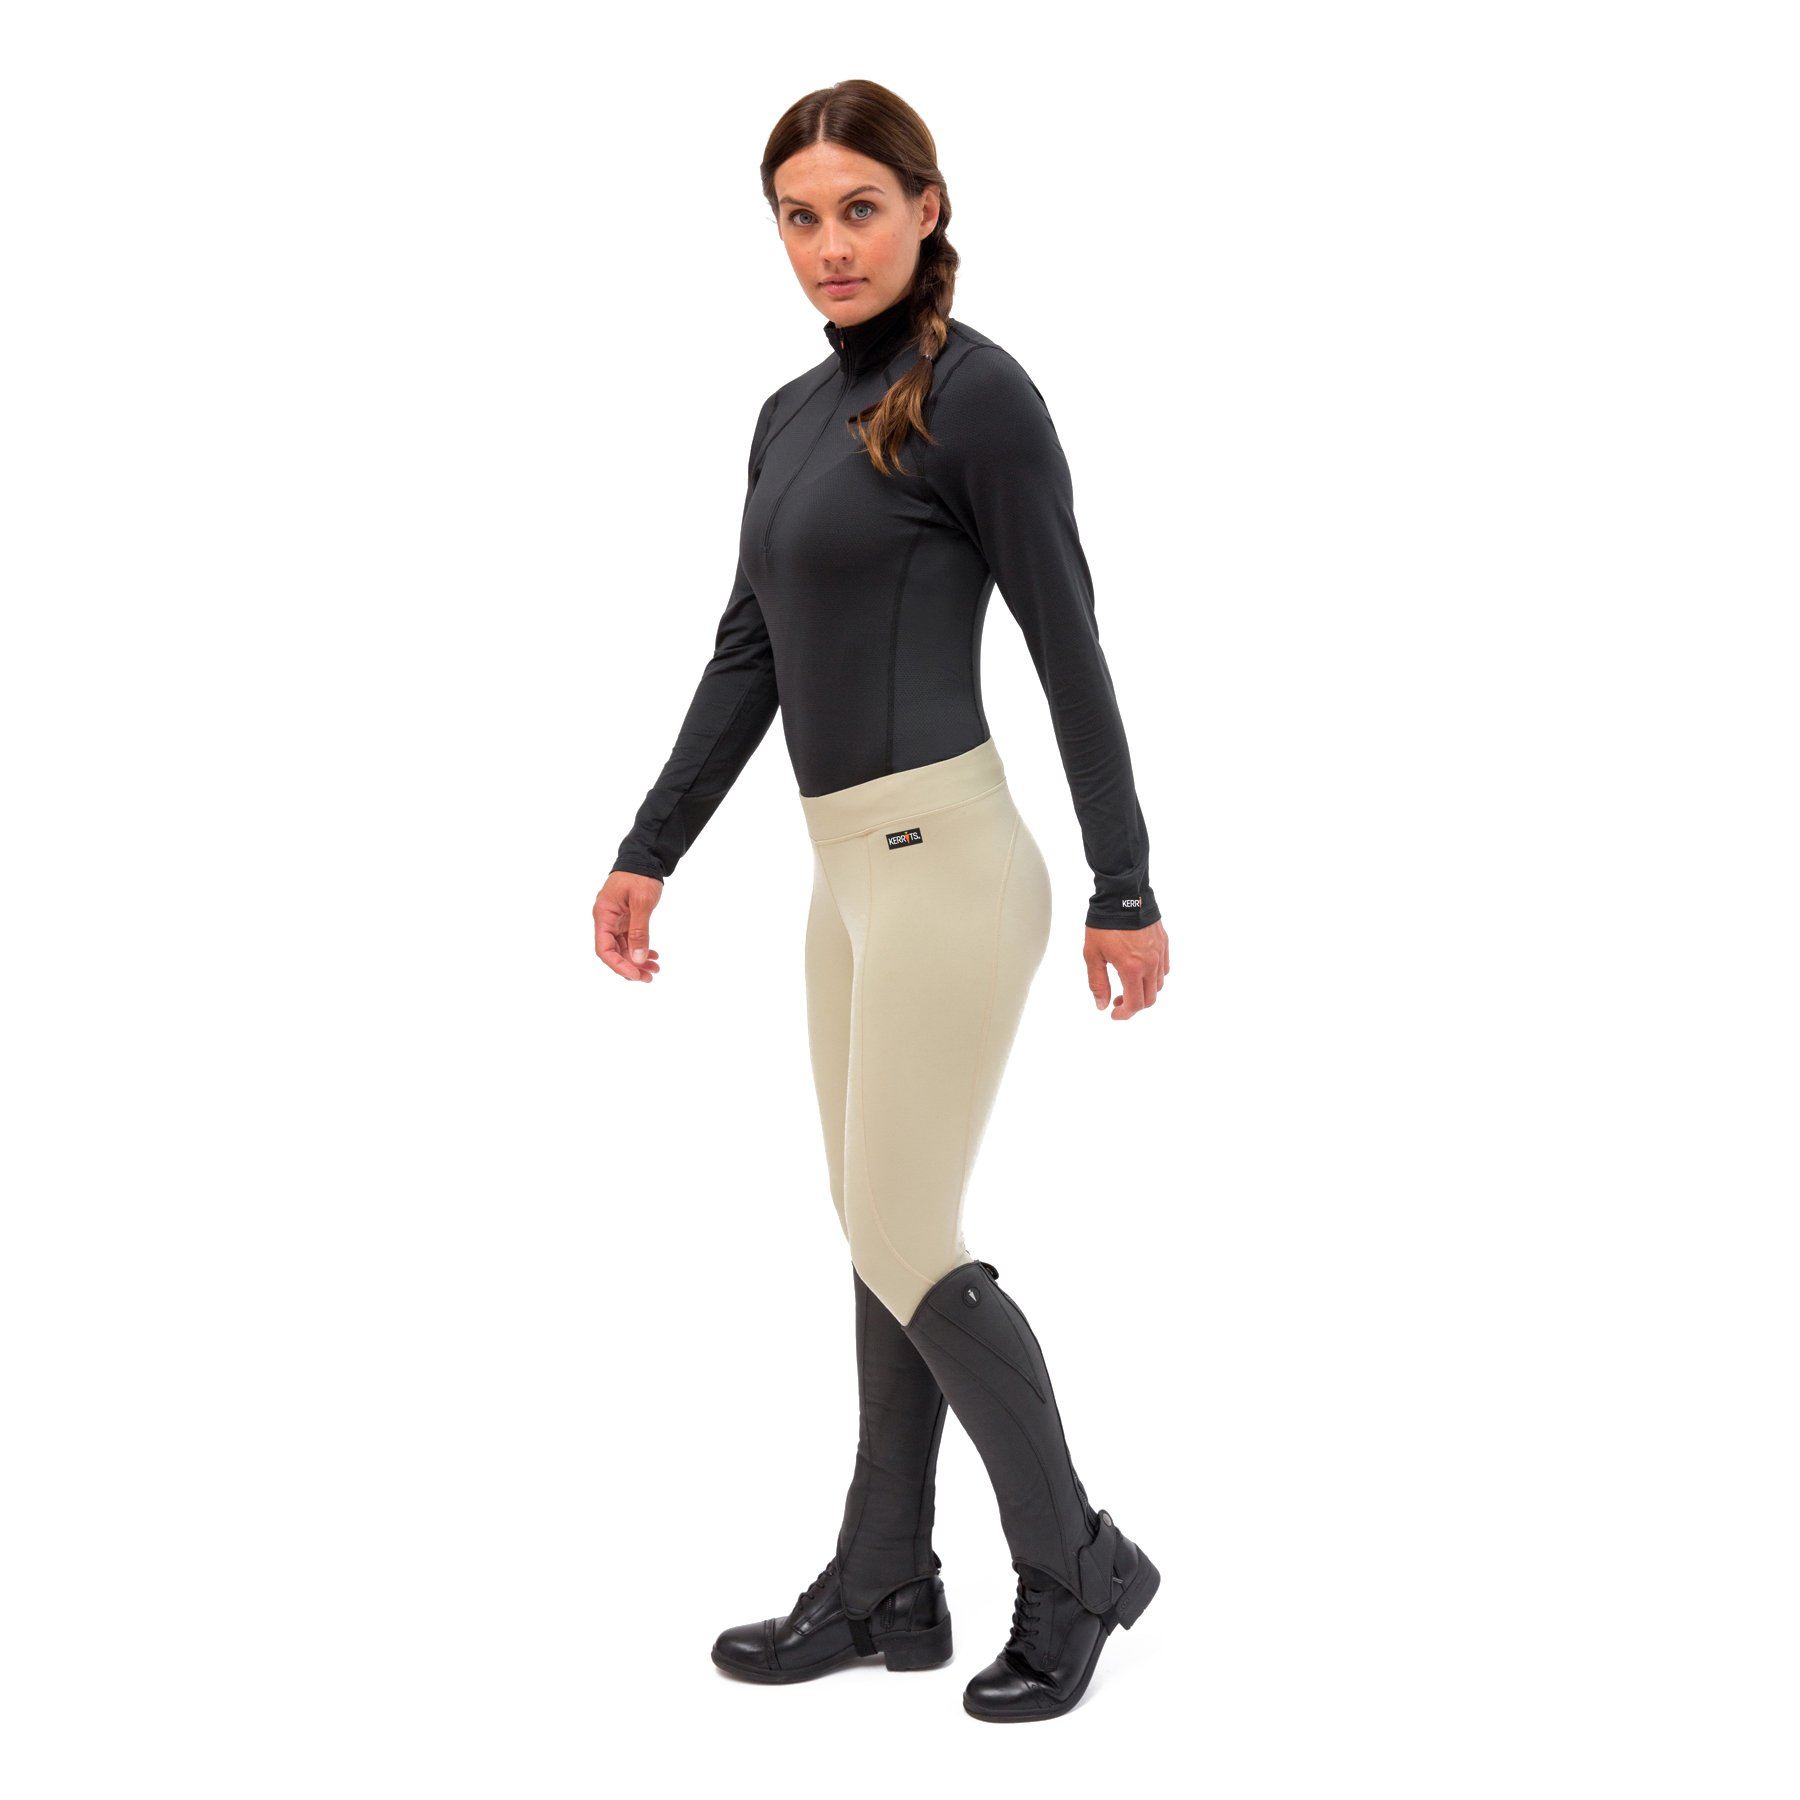 Kerrits Women/'s Performance Riding Tights Flow Rise with No Roll Waistband